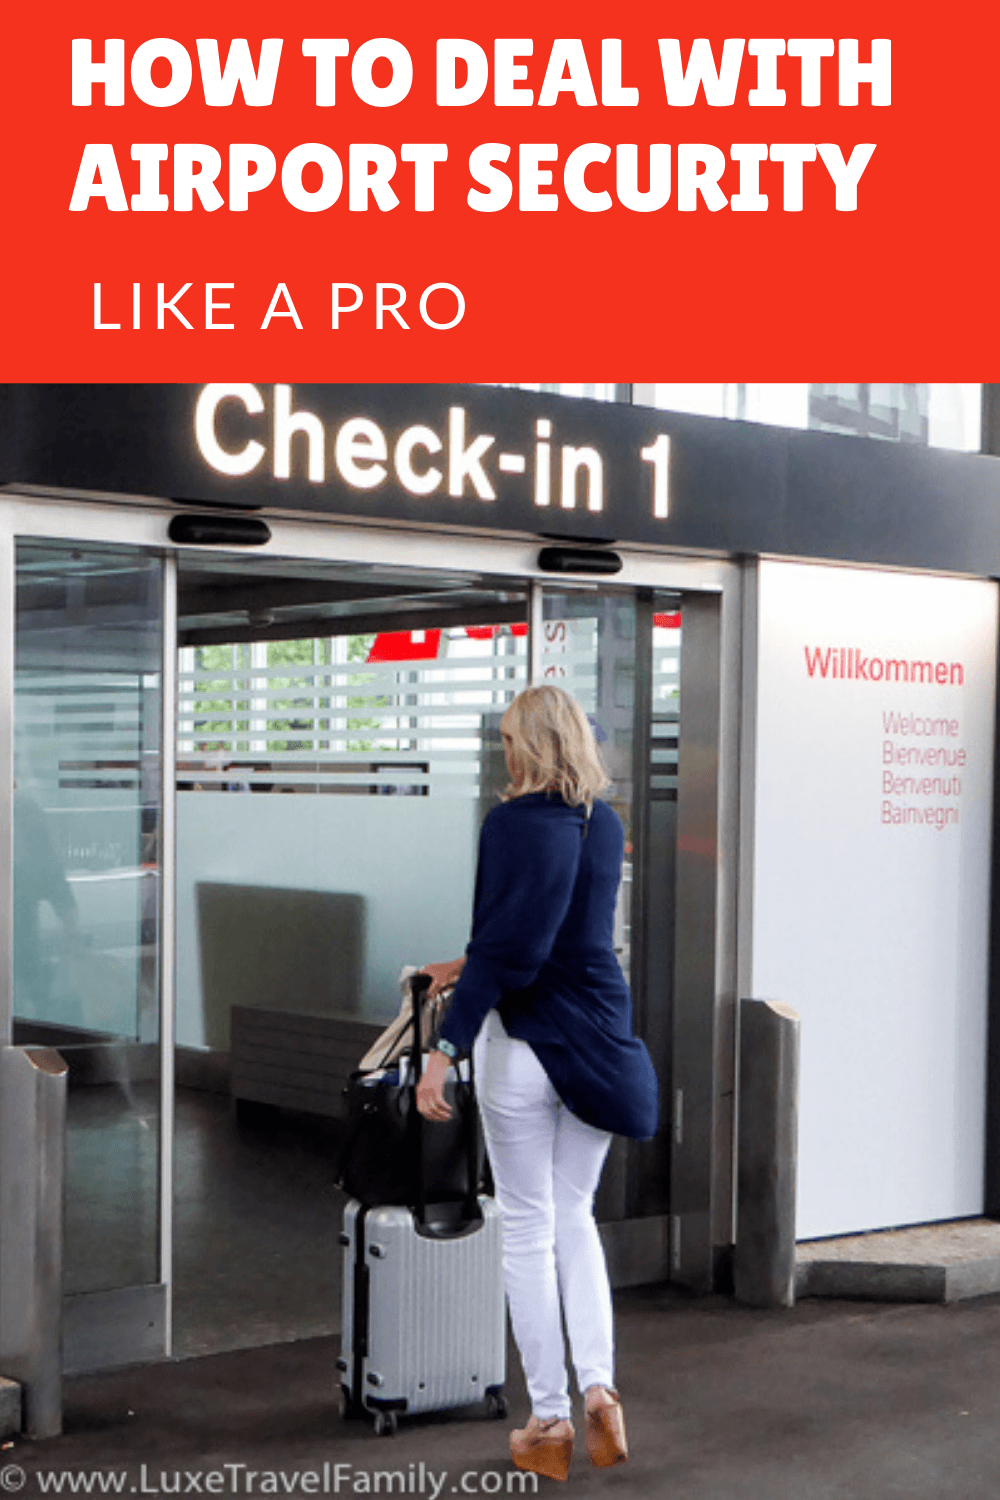 The Latest on How to Deal with Airport Security Like A Pro